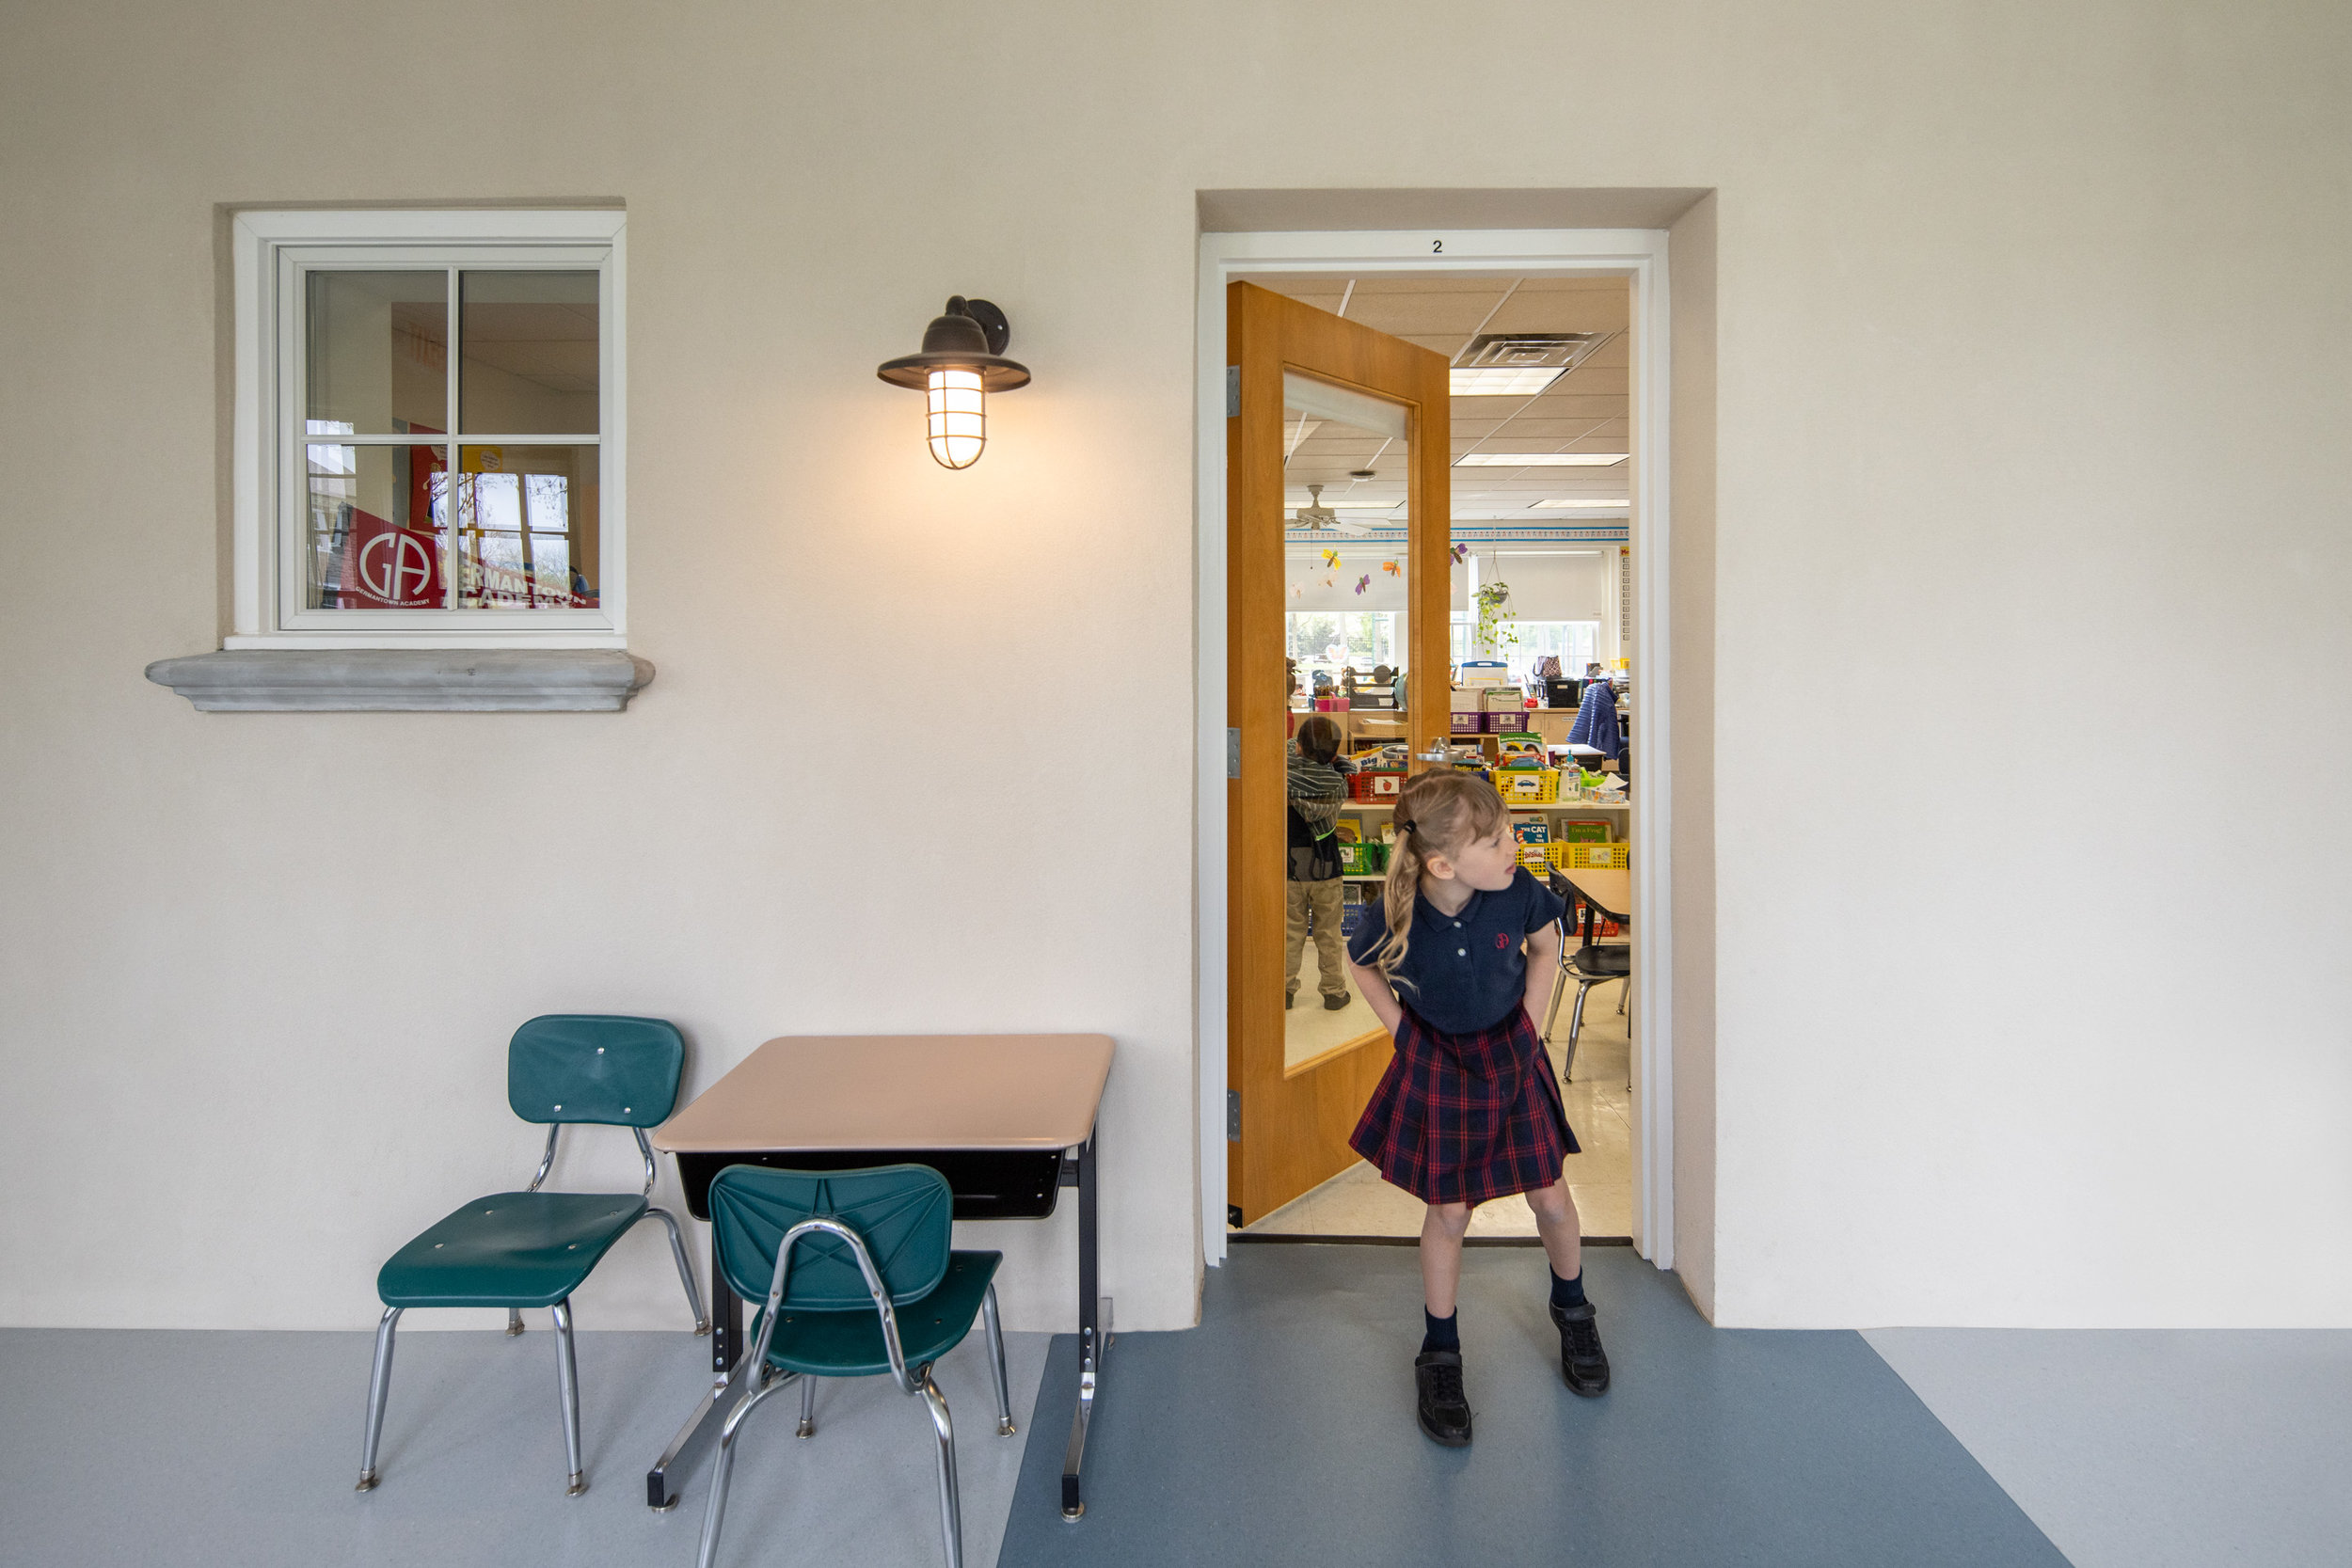 The renovation of Germantown Academy included new interior corridors to connect classrooms.